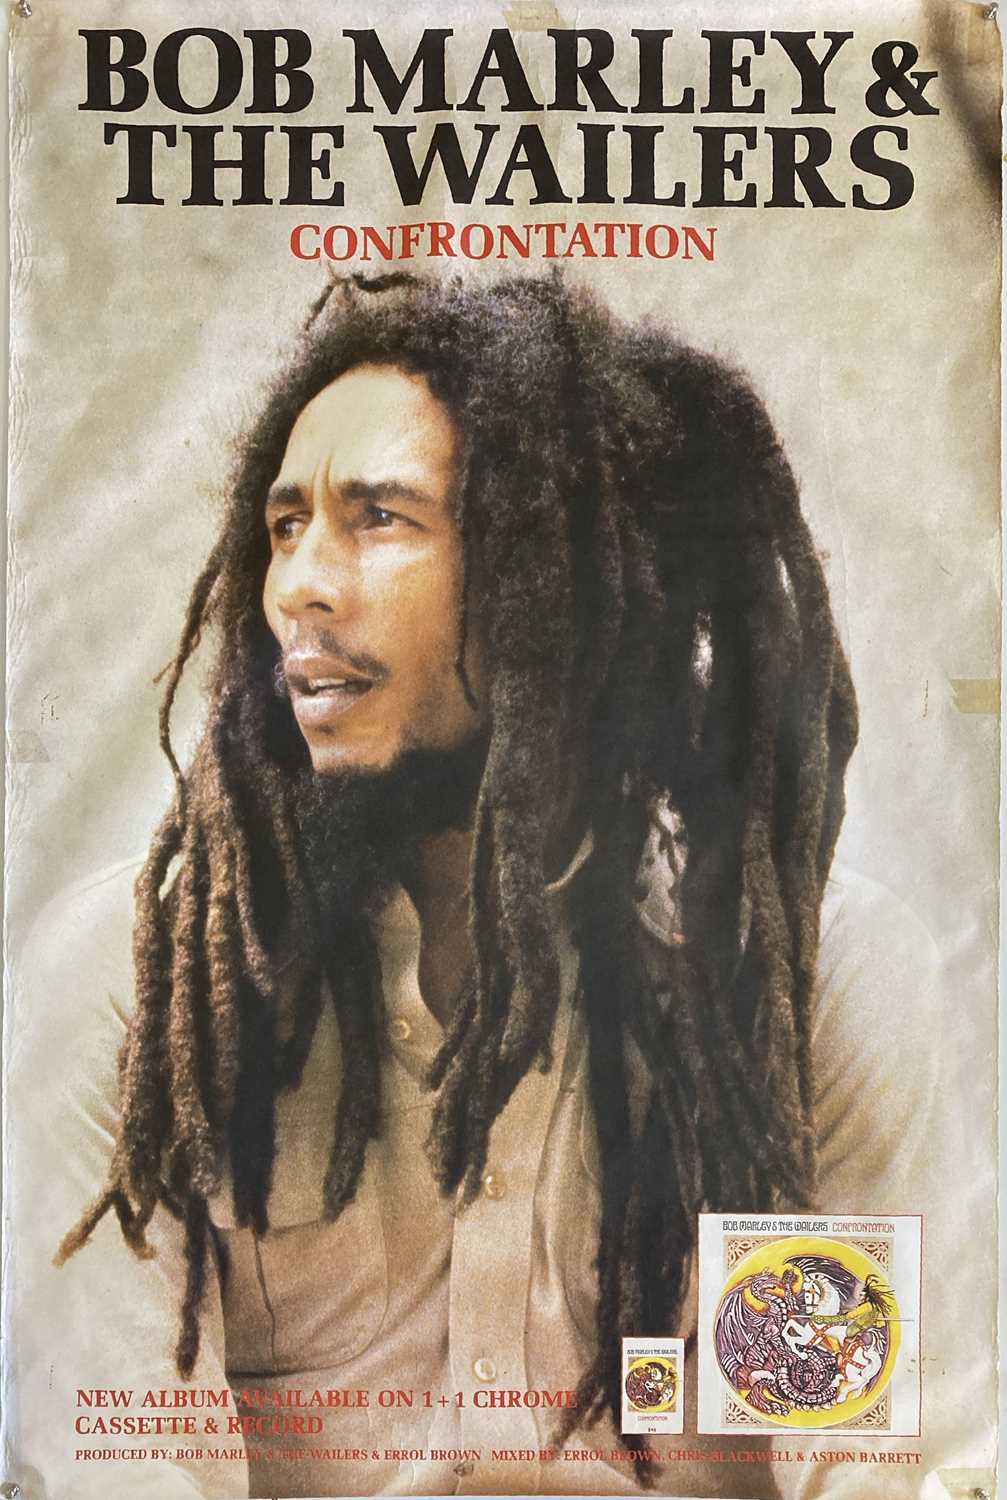 BOB MARLEY AND THE WAILERS - CONFRONTATION POSTER.